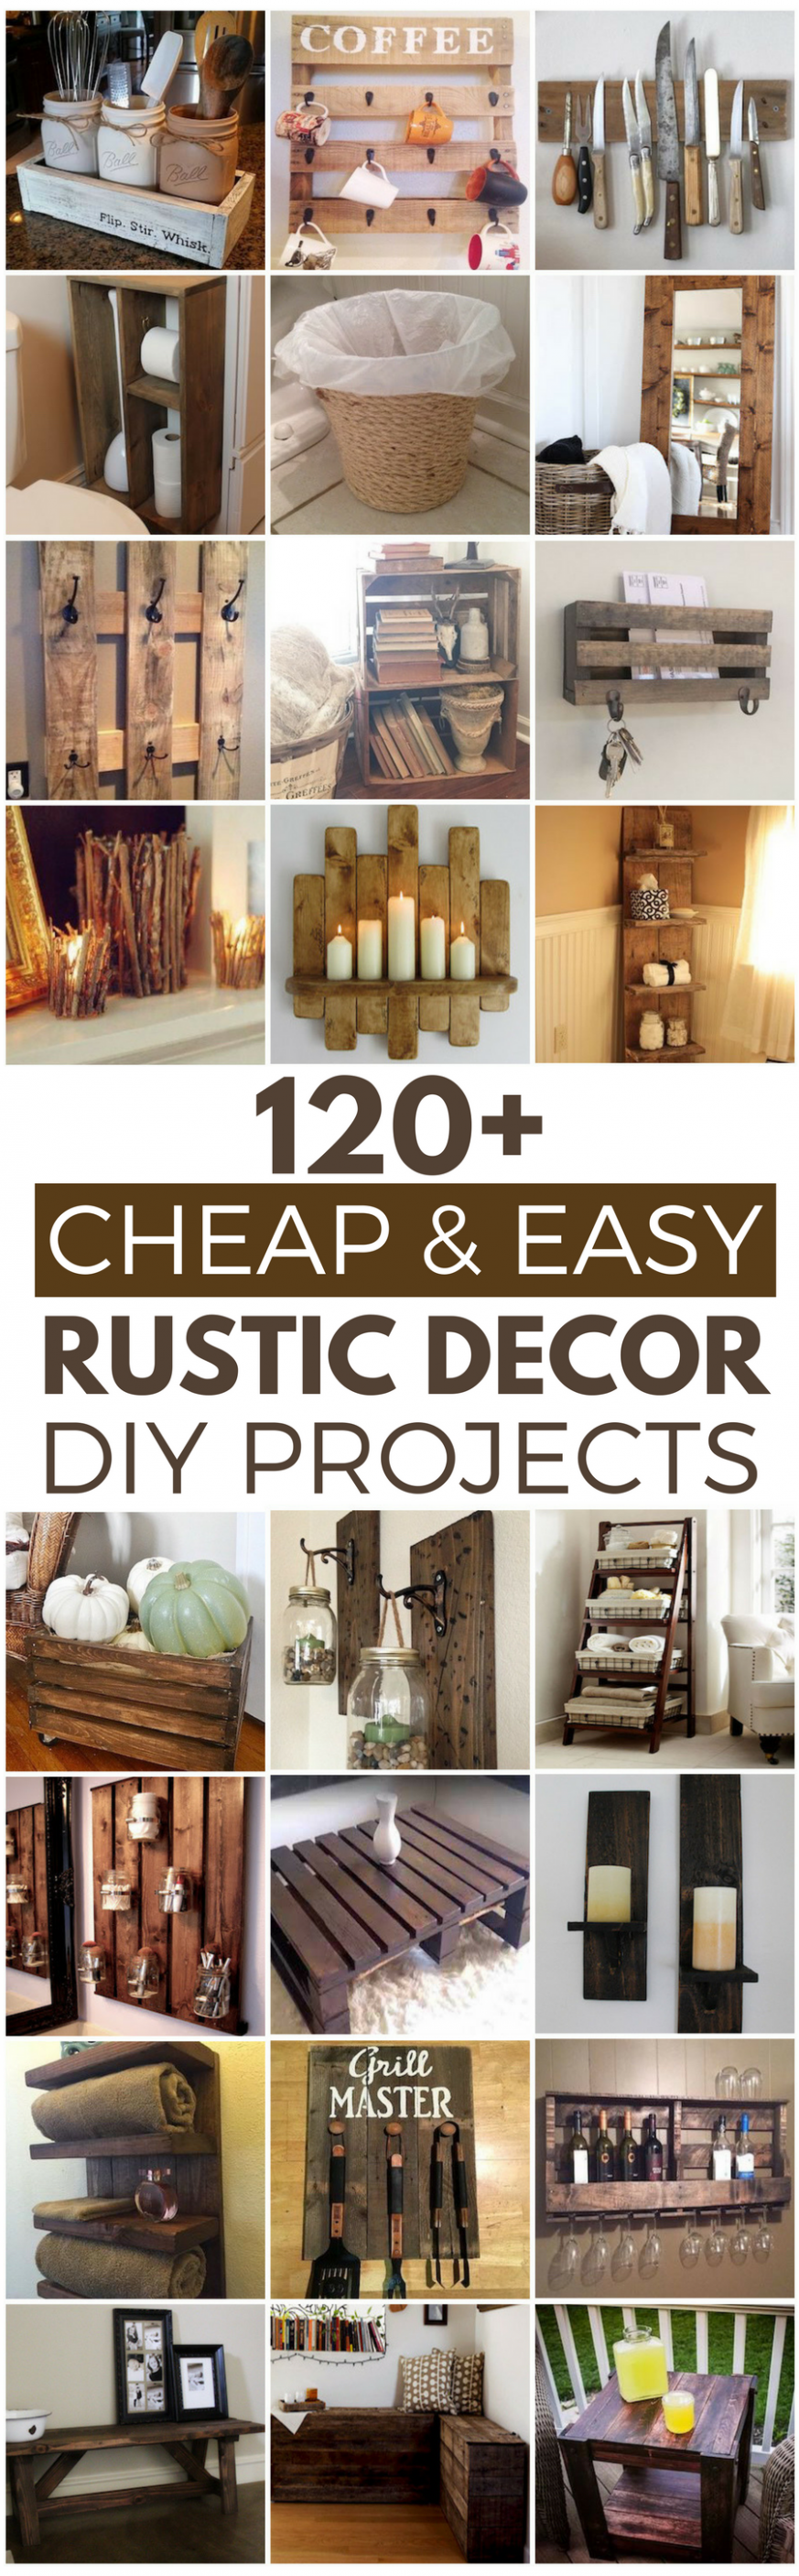 12 Cheap and Easy Rustic DIY Home Decor (With images) | Diy decor ..